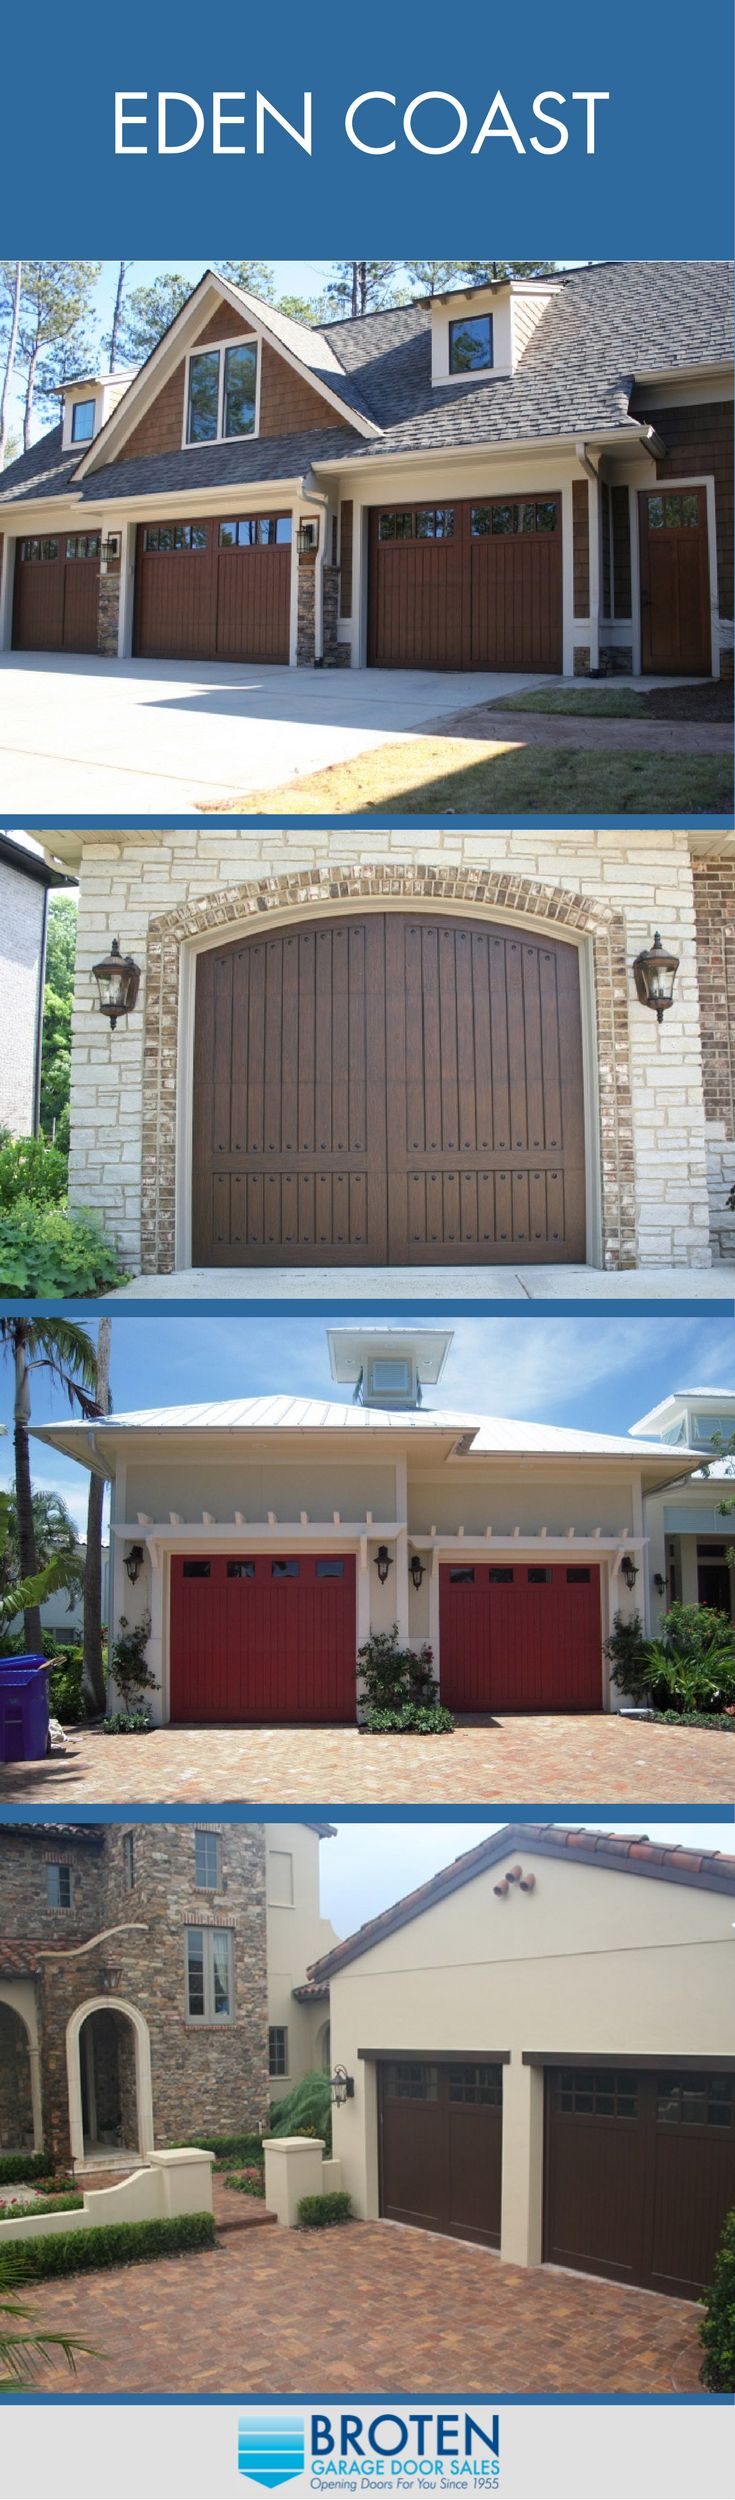 broten garage doors65 best Eden Coast Garage Doors images on Pinterest  Coast